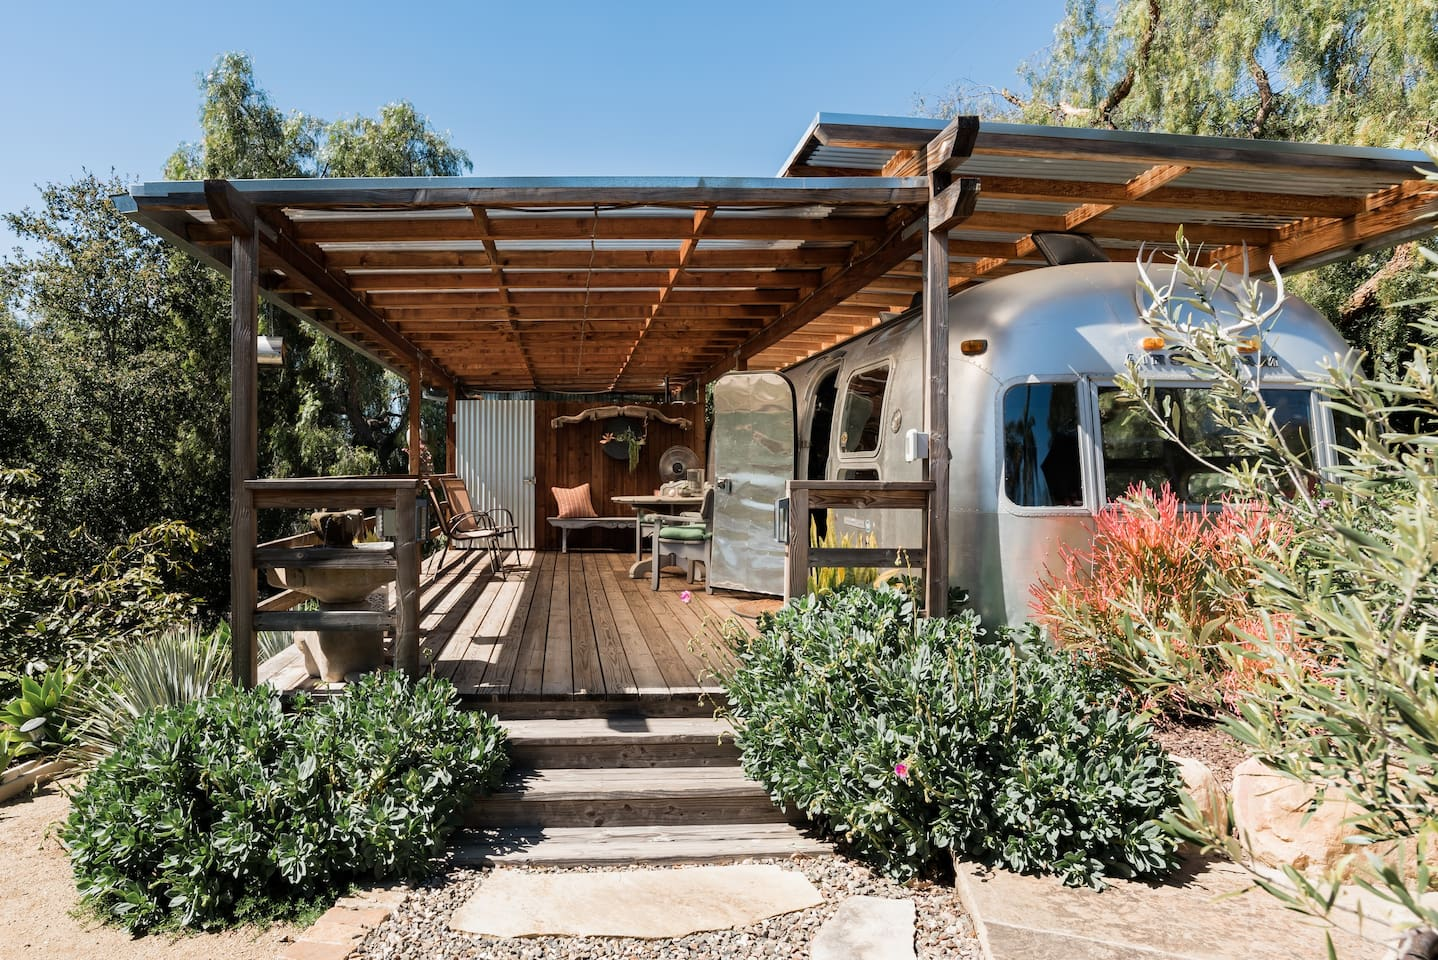 Cool Airbnb in California... 1974 Airstream, with a wooden deck and awning attached, surrounded by plants and trees.